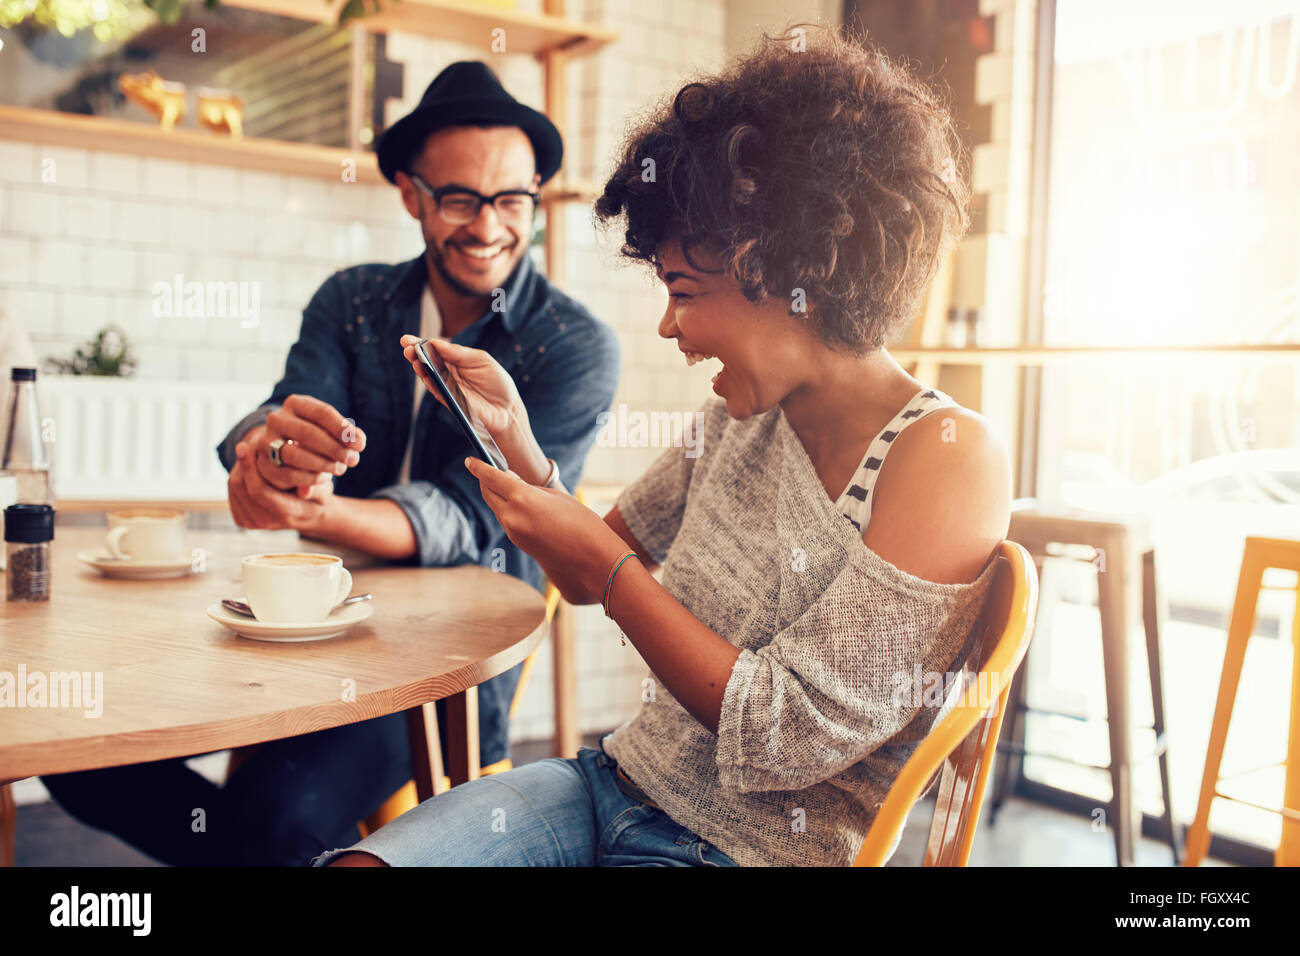 Portrait of smiling young woman at a cafe table looking at digital tablet with a friend sitting by. - Stock Image